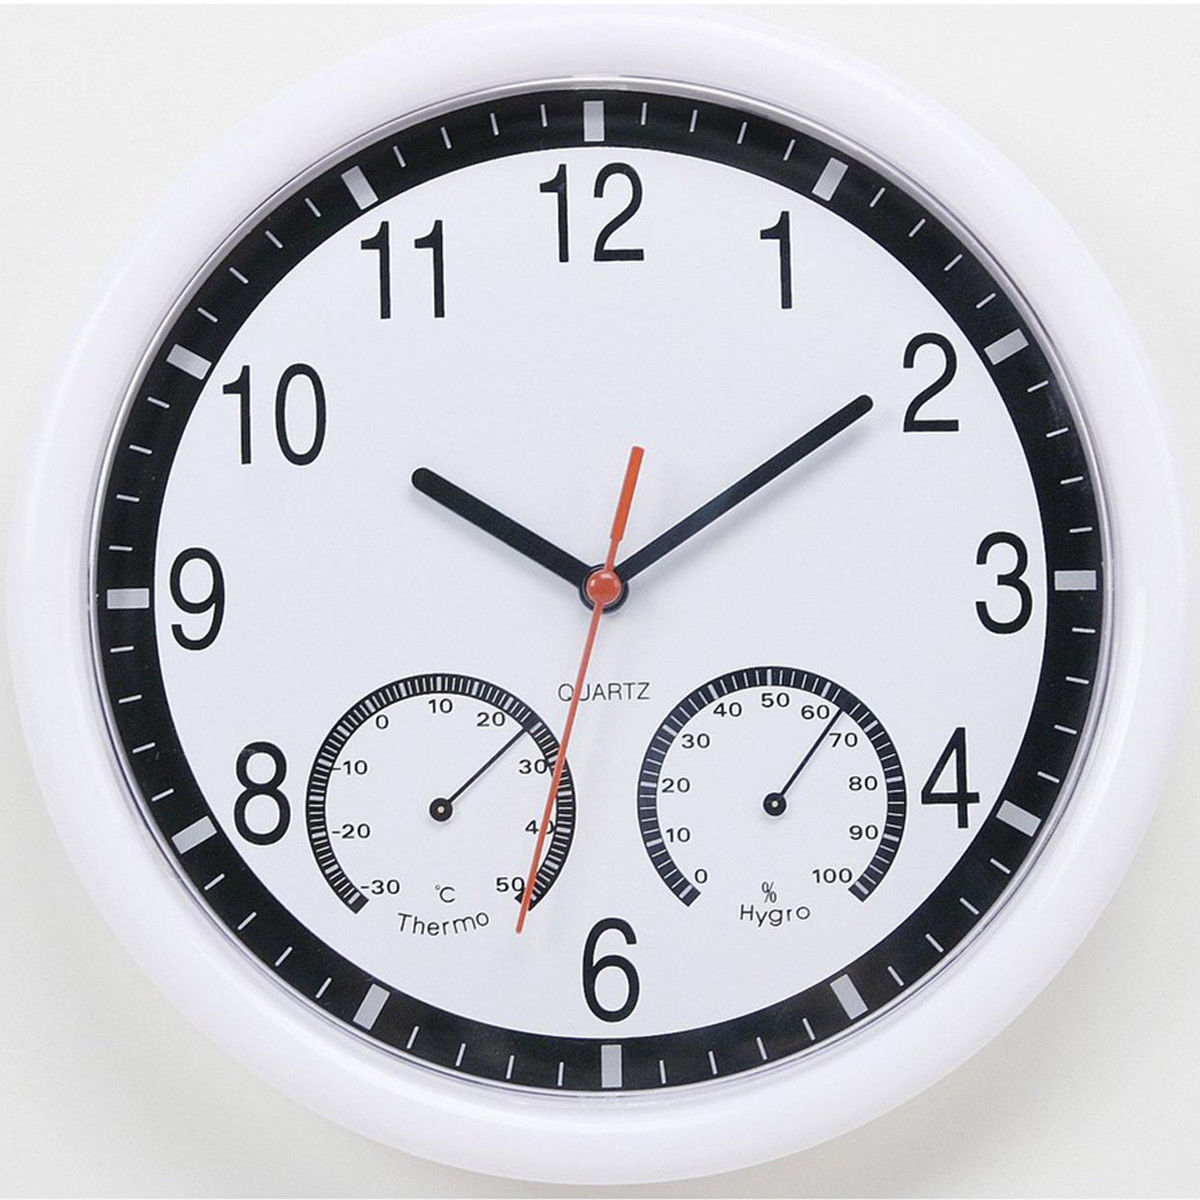 10 Inch Wall Clock With Thermometer & Hygrometer Non-ticking Silent Indoor/outdoo  For Living Room Bedroom Decor Clock New